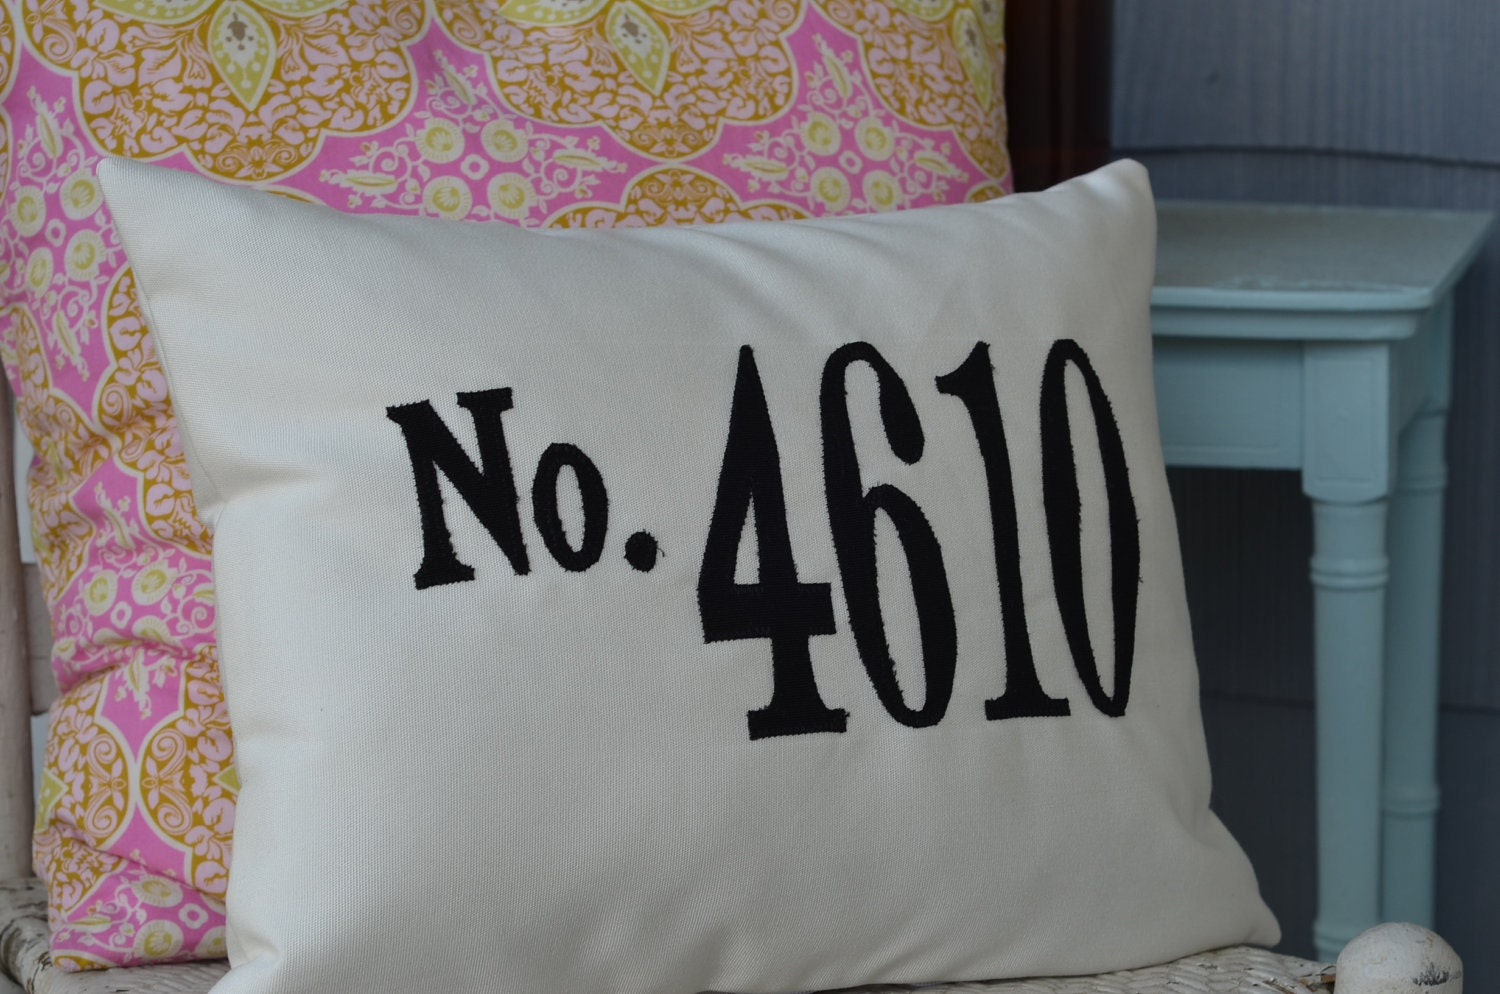 House Number Pillow Address Pillow Sunbrella Fabric